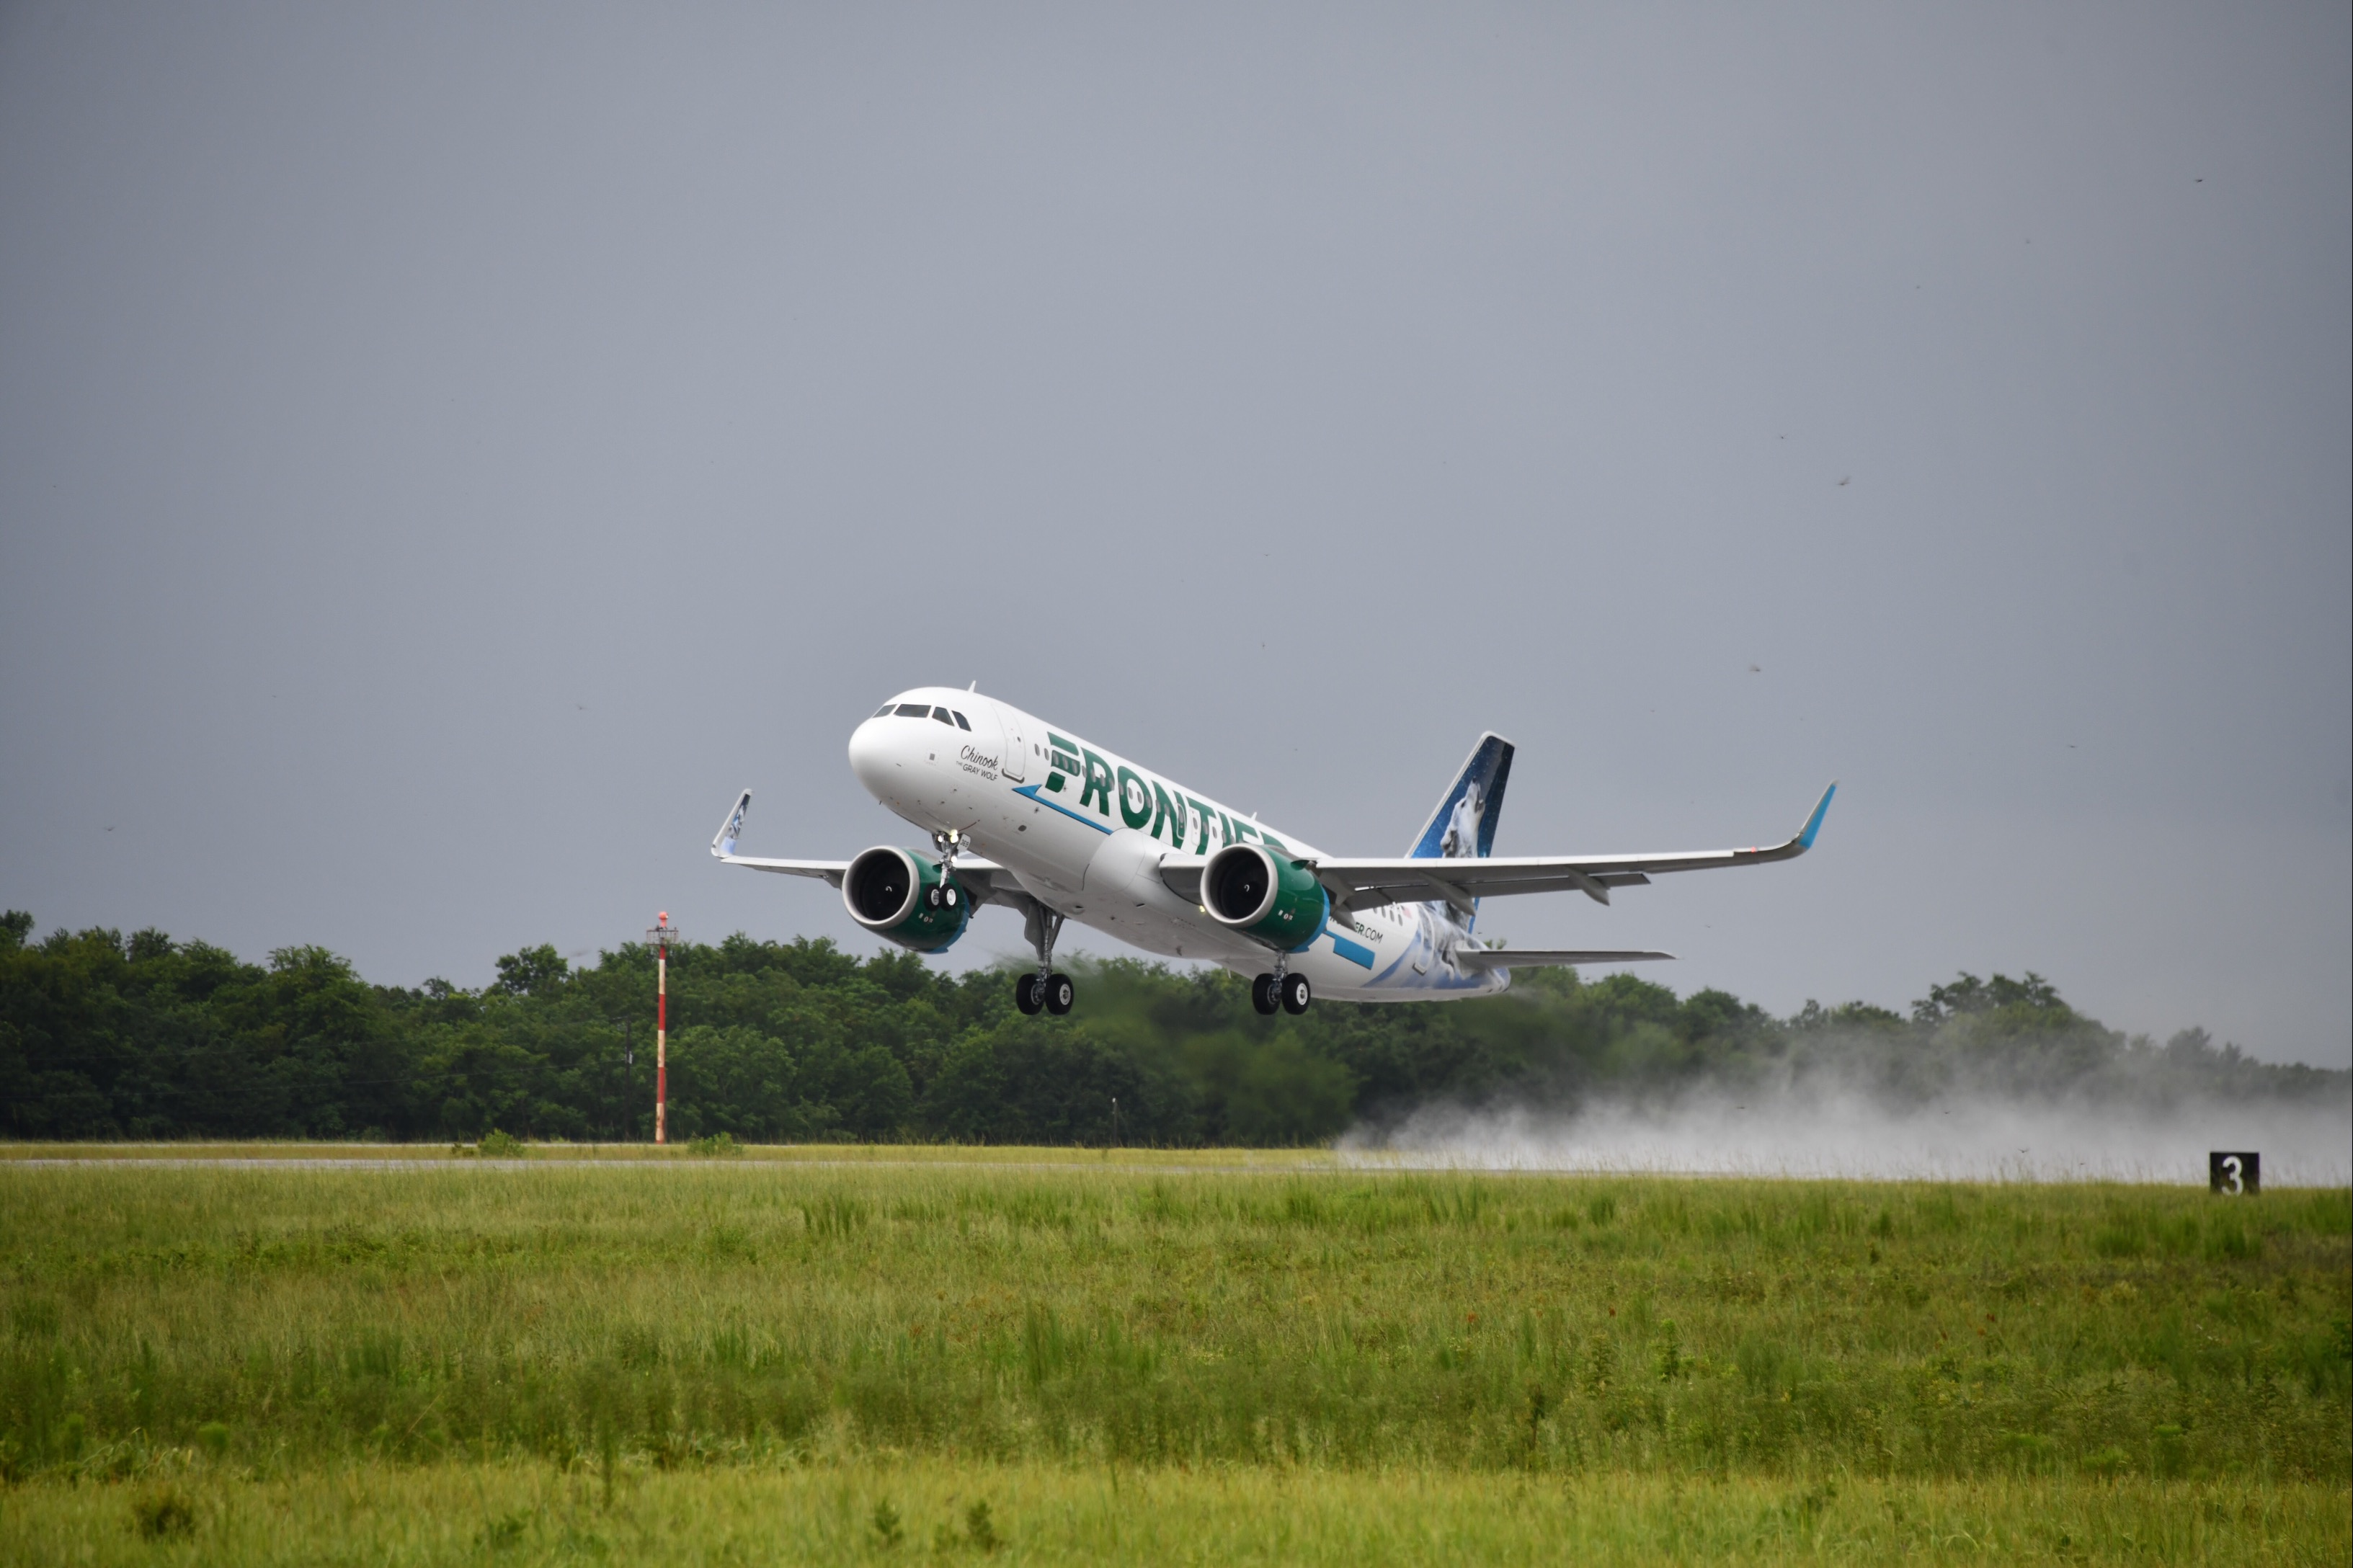 Photo by flyfrontier.com